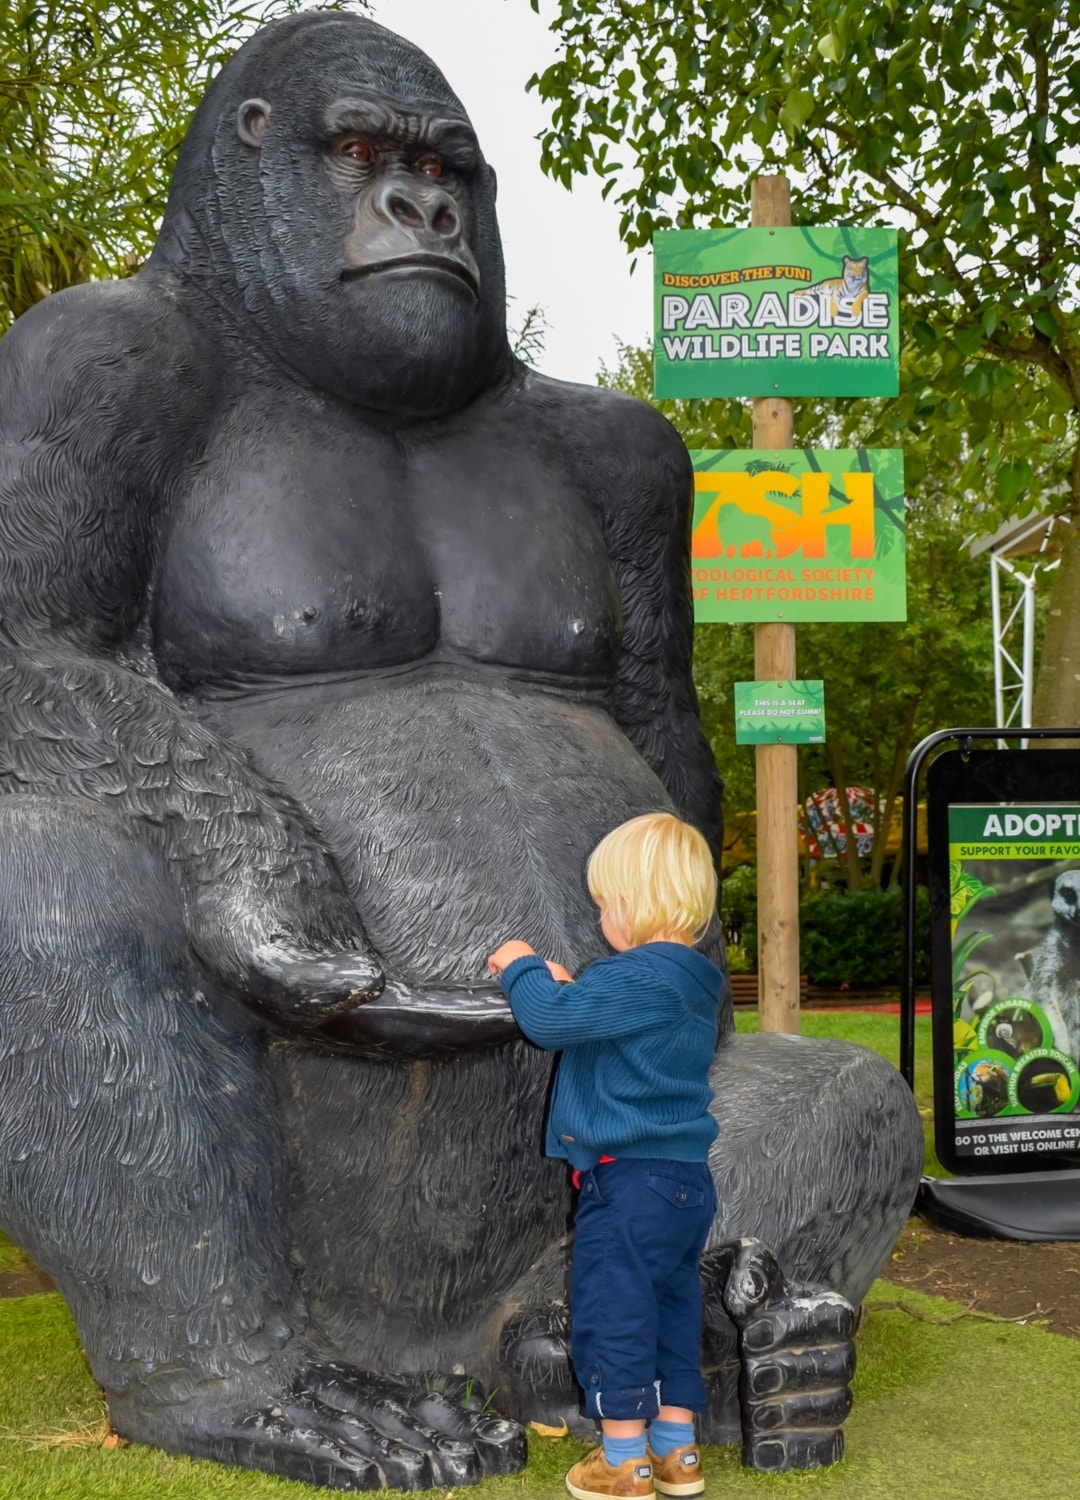 A photograph of a little boy with a statue of a gorilla at Paradise Wildlife Park - Paradise Wildlife Park - A Review - Mrs H's favourite things